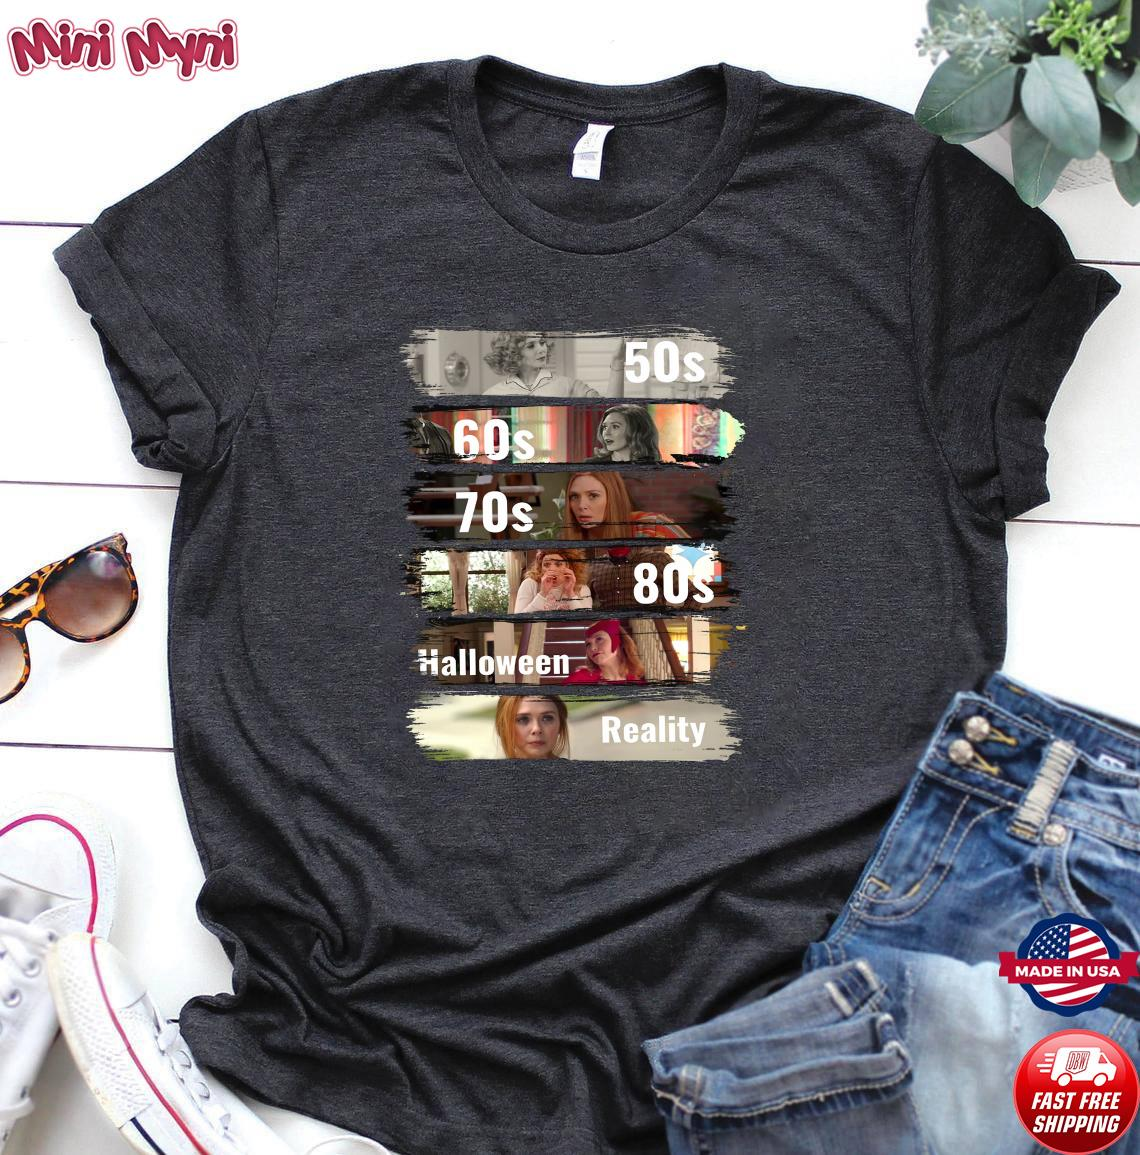 Official 50s 60s 70s 80s Halloween Reality Shirt